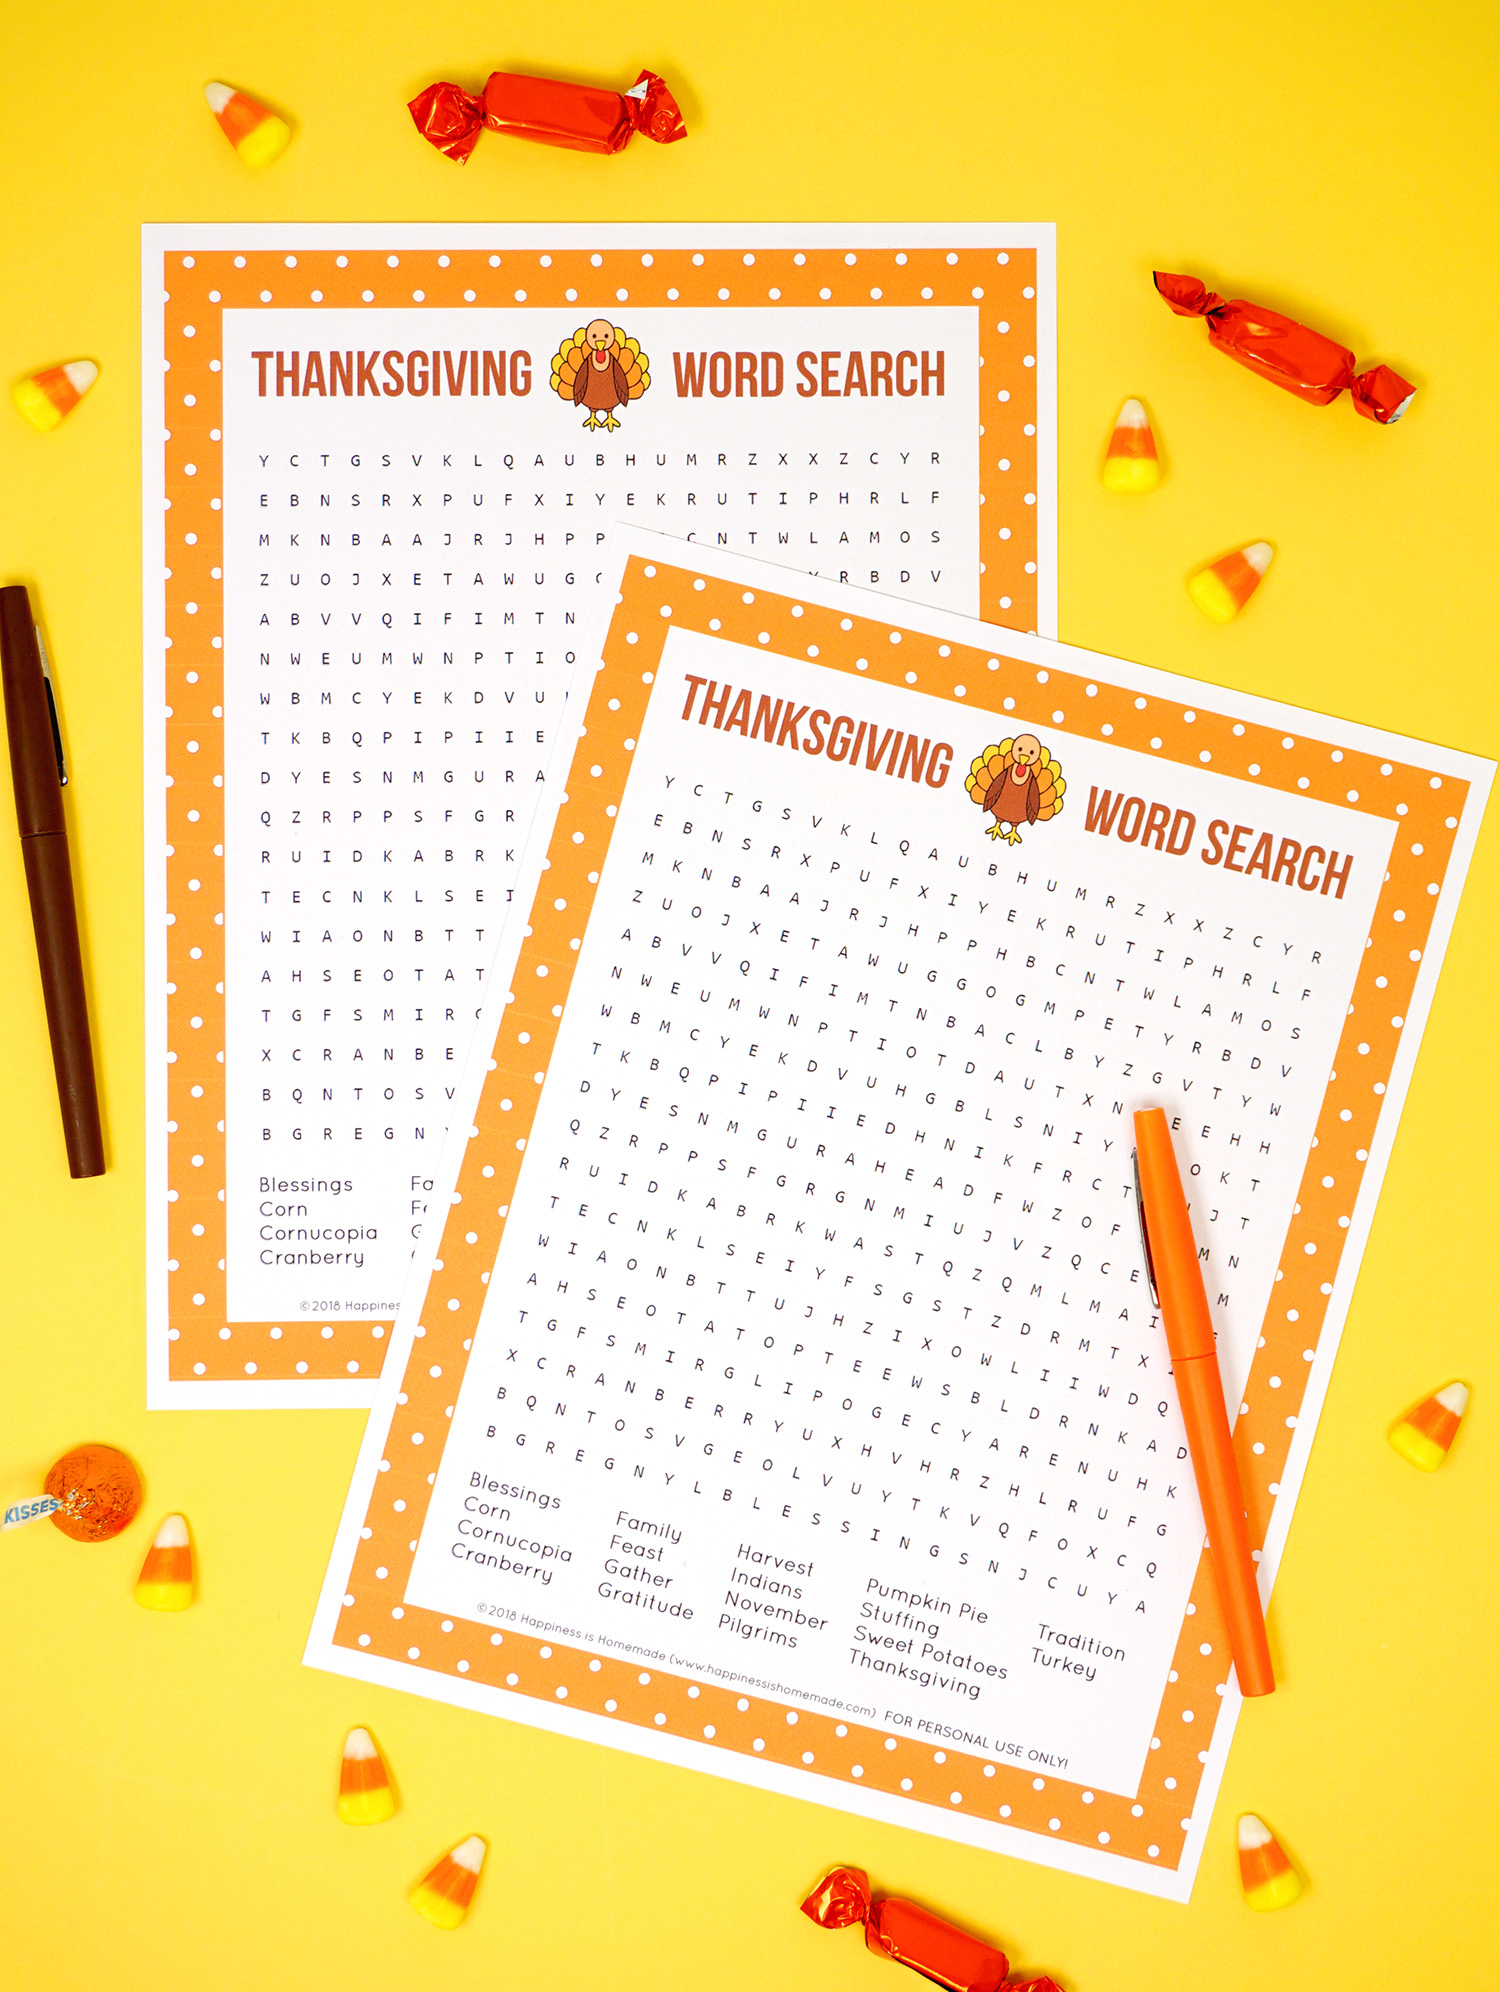 Thanksgiving Word Search Printable - Happiness Is Homemade - Printable Thanksgiving Puzzles